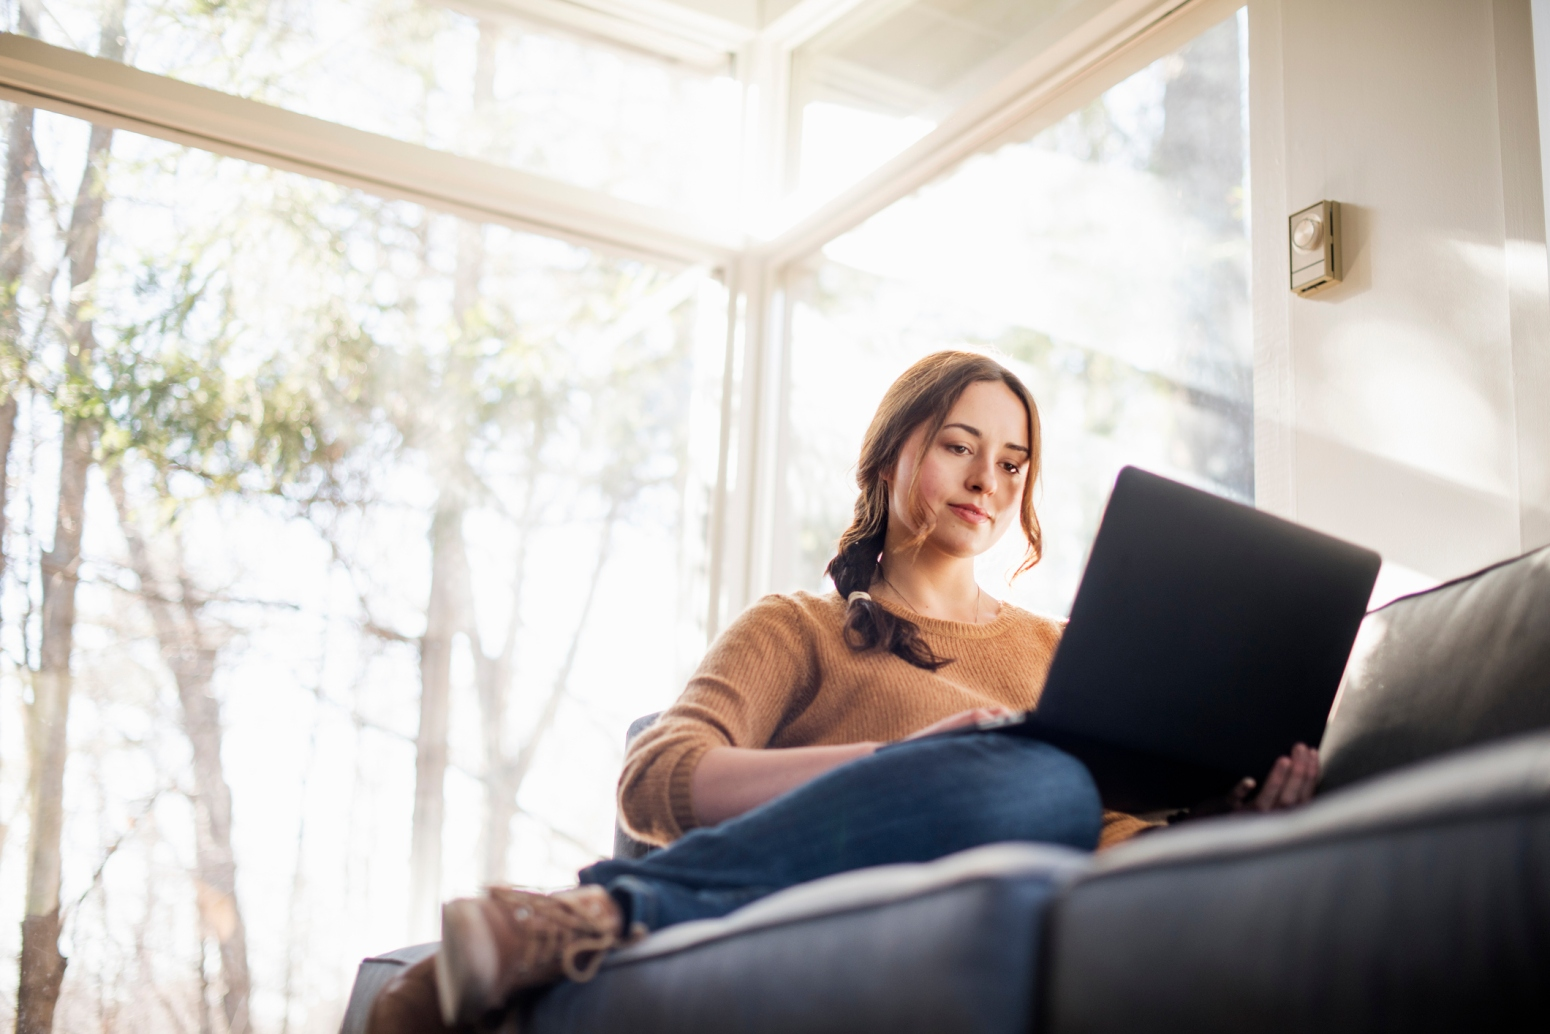 The Importance of Rituals and Boundaries When Working From Home